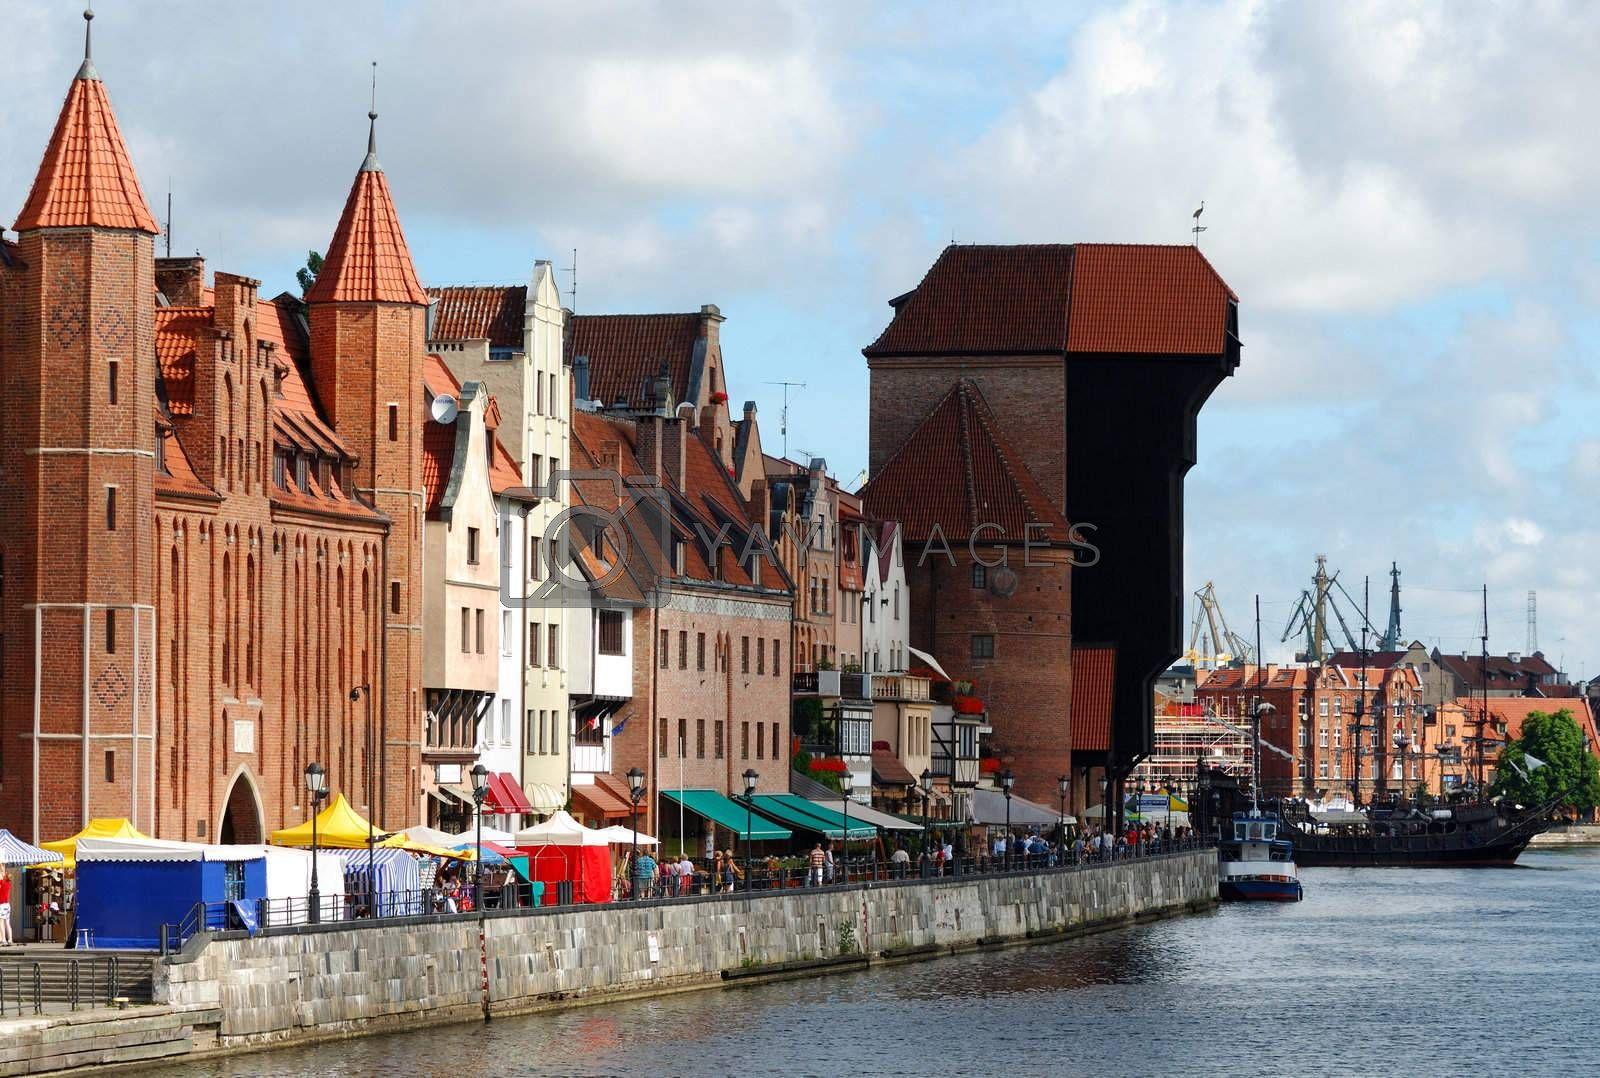 Gdansk in Poland during Saint Dominic Fair